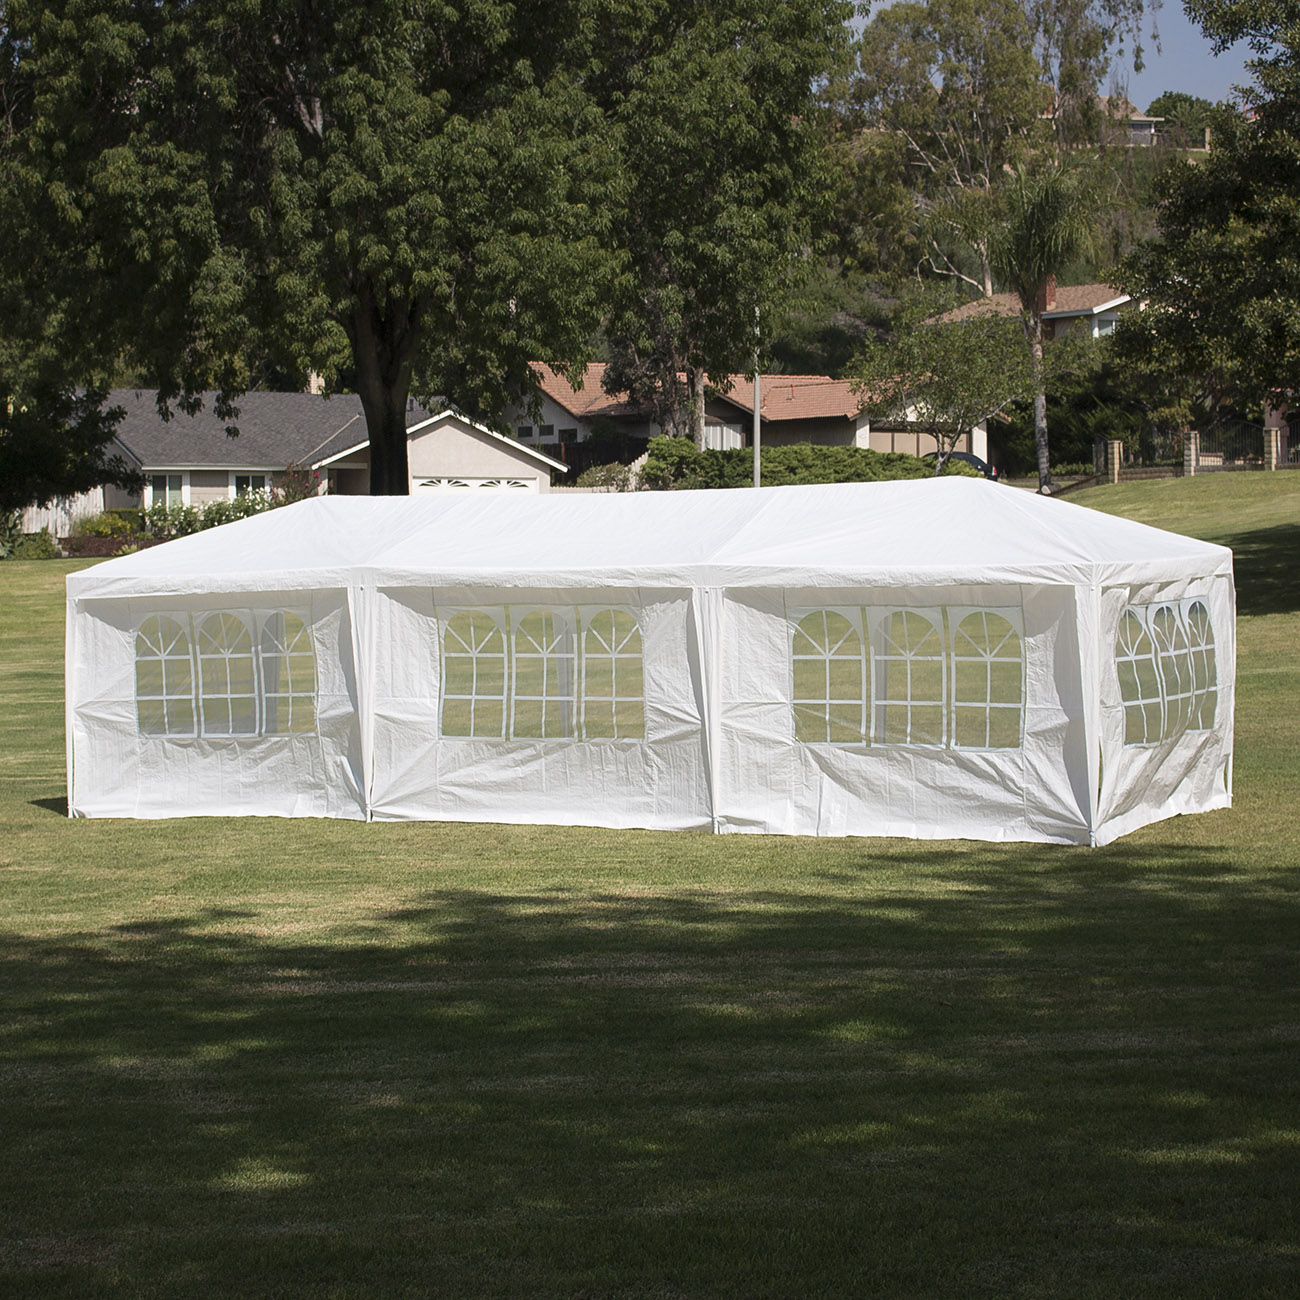 10u0027x30u0027Canopy Party Wedding Outdoor Tent Gazebo Pavilion Cater Events w/ 5 Walls & 10u0027x30u0027Canopy Party Wedding Outdoor Tent Gazebo Pavilion Cater ...